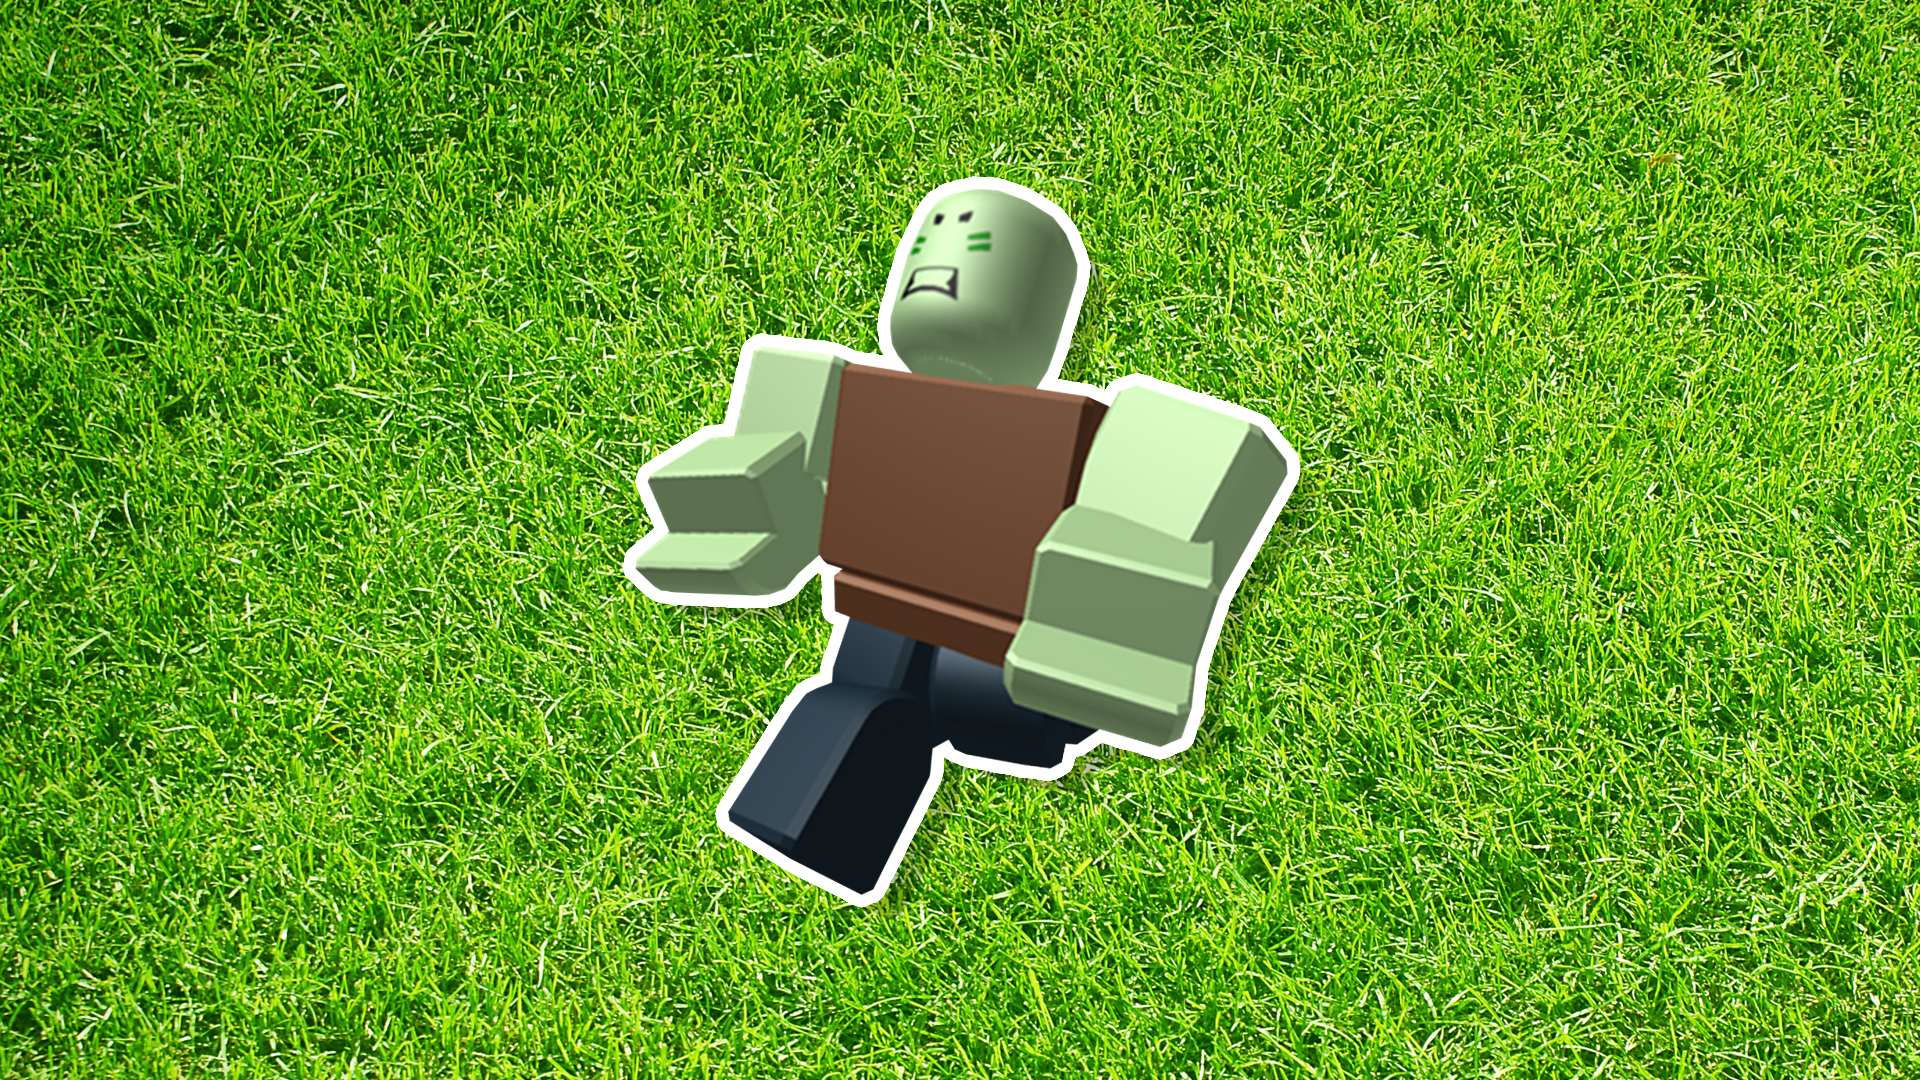 A Roblox Zombie game